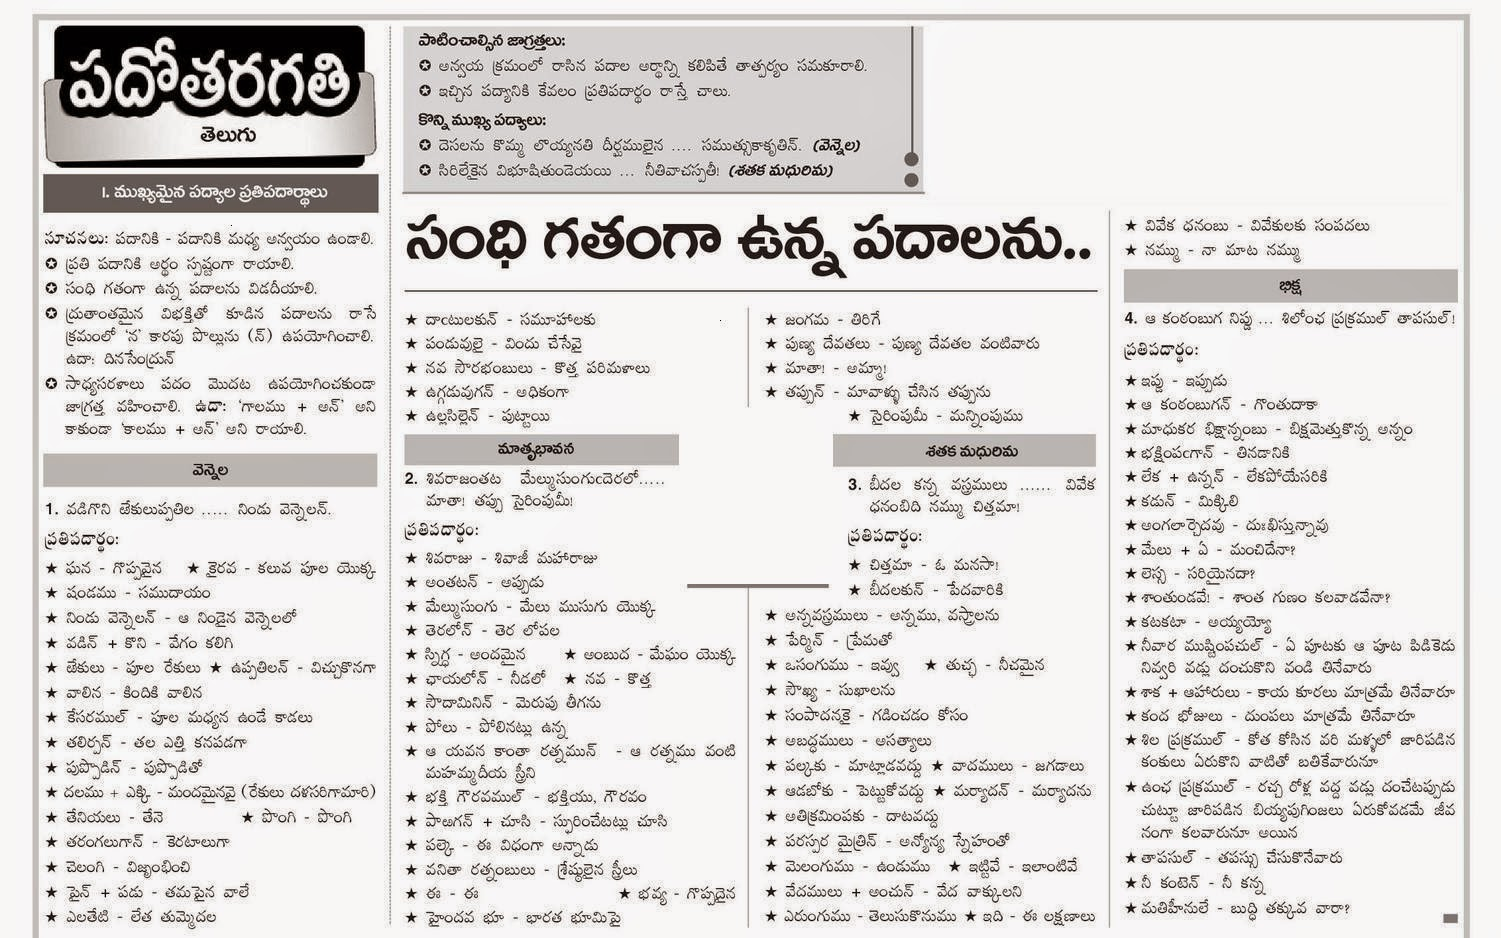 telugu general essays Telugu essays on telugu search search results how to write an essay an essay can have many purposes, but the basic structure is the same no matter what when .